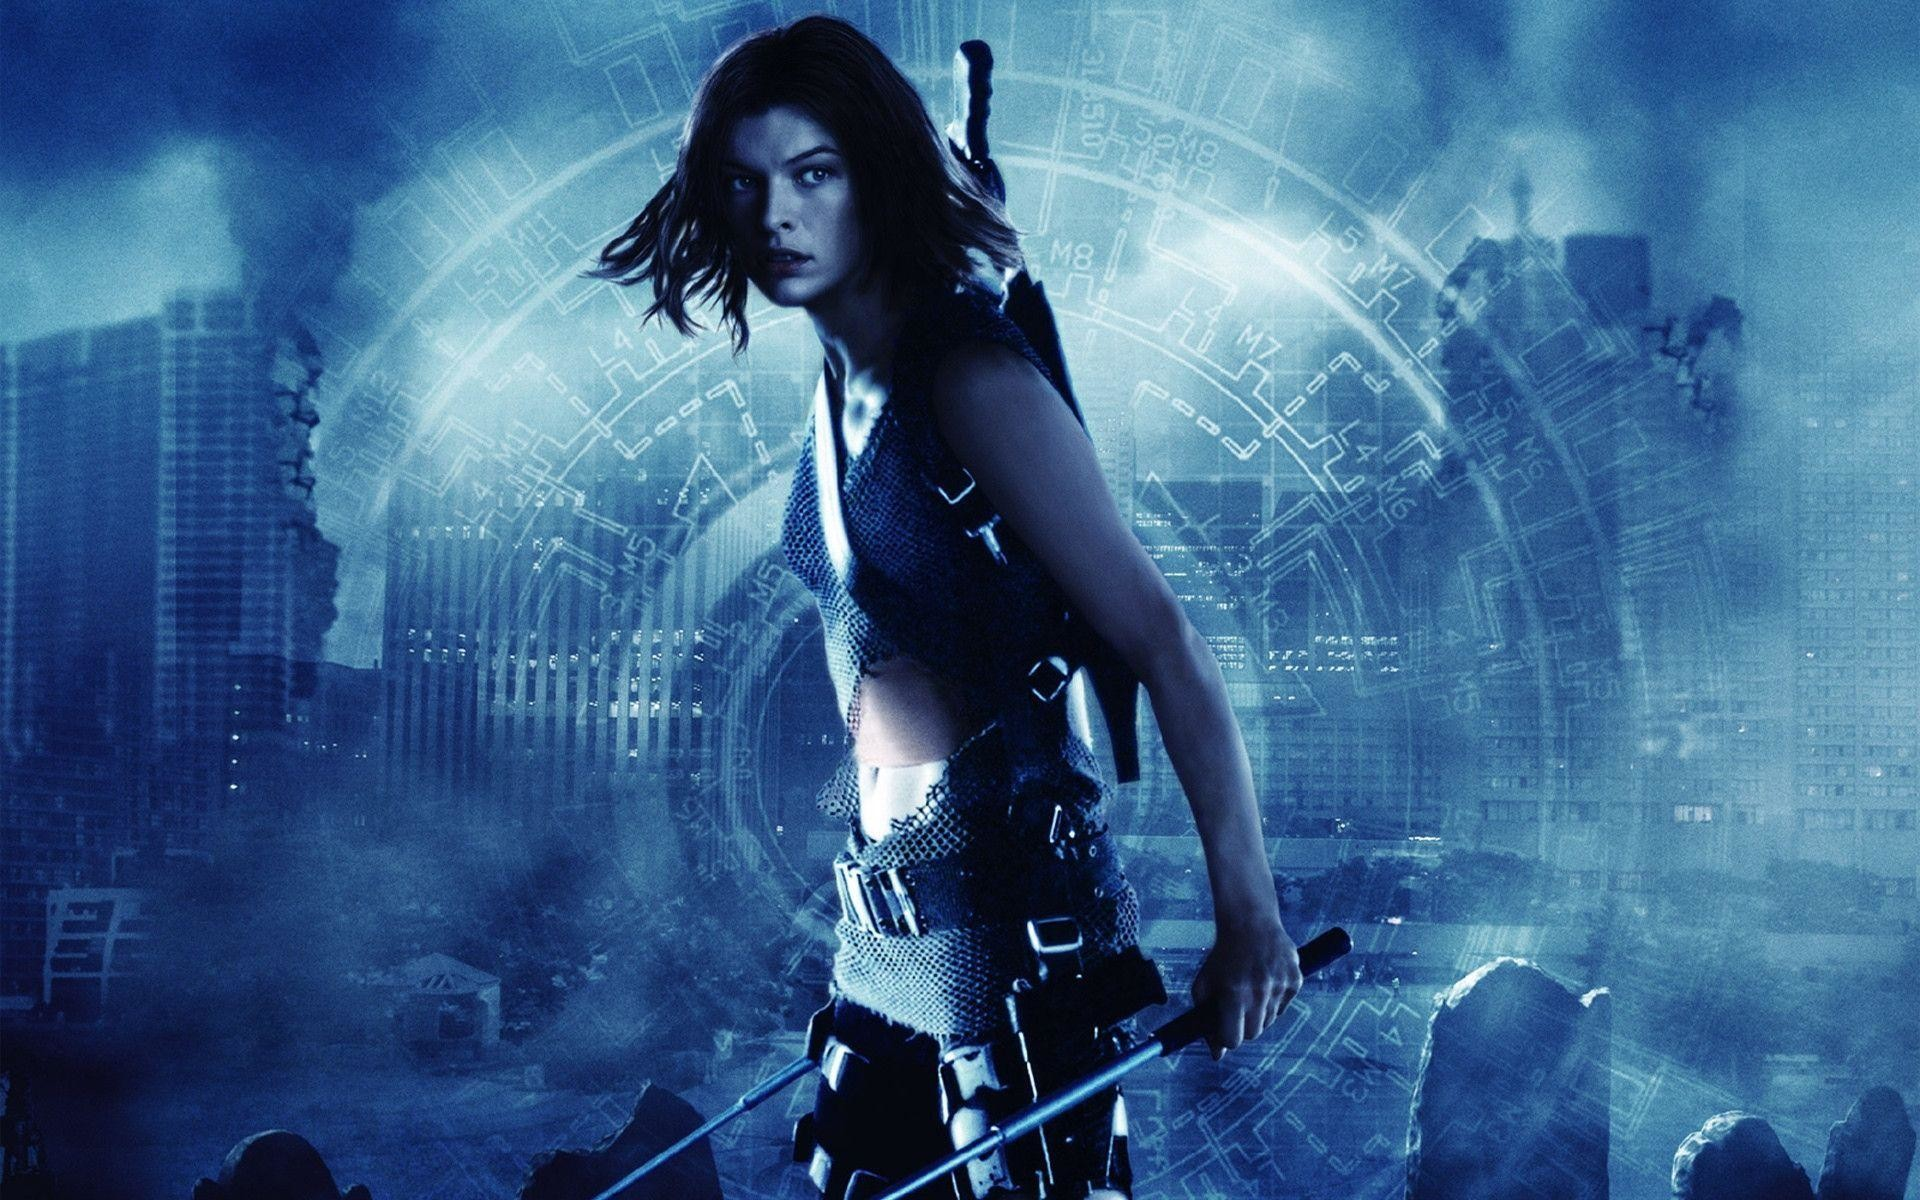 Milla Jovovich in Resident Evil 6 Wallpapers | HD Wallpapers